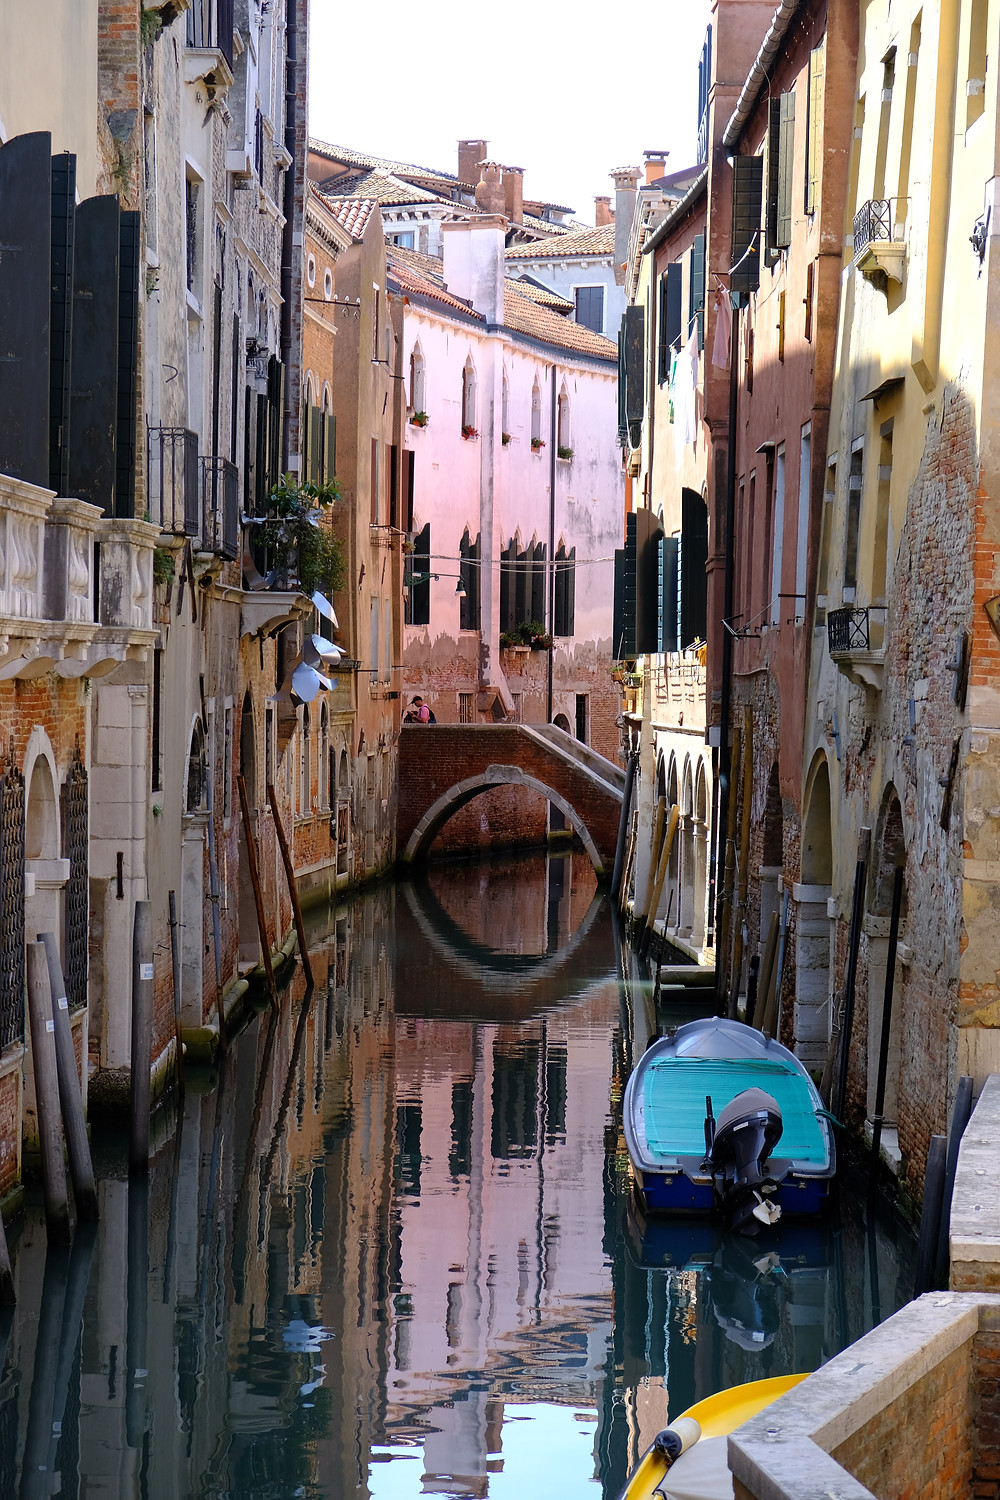 Houses in pinks, yellows and brown on either side of a canal in Venice with boats anchored in water and a pedestrian bridge.